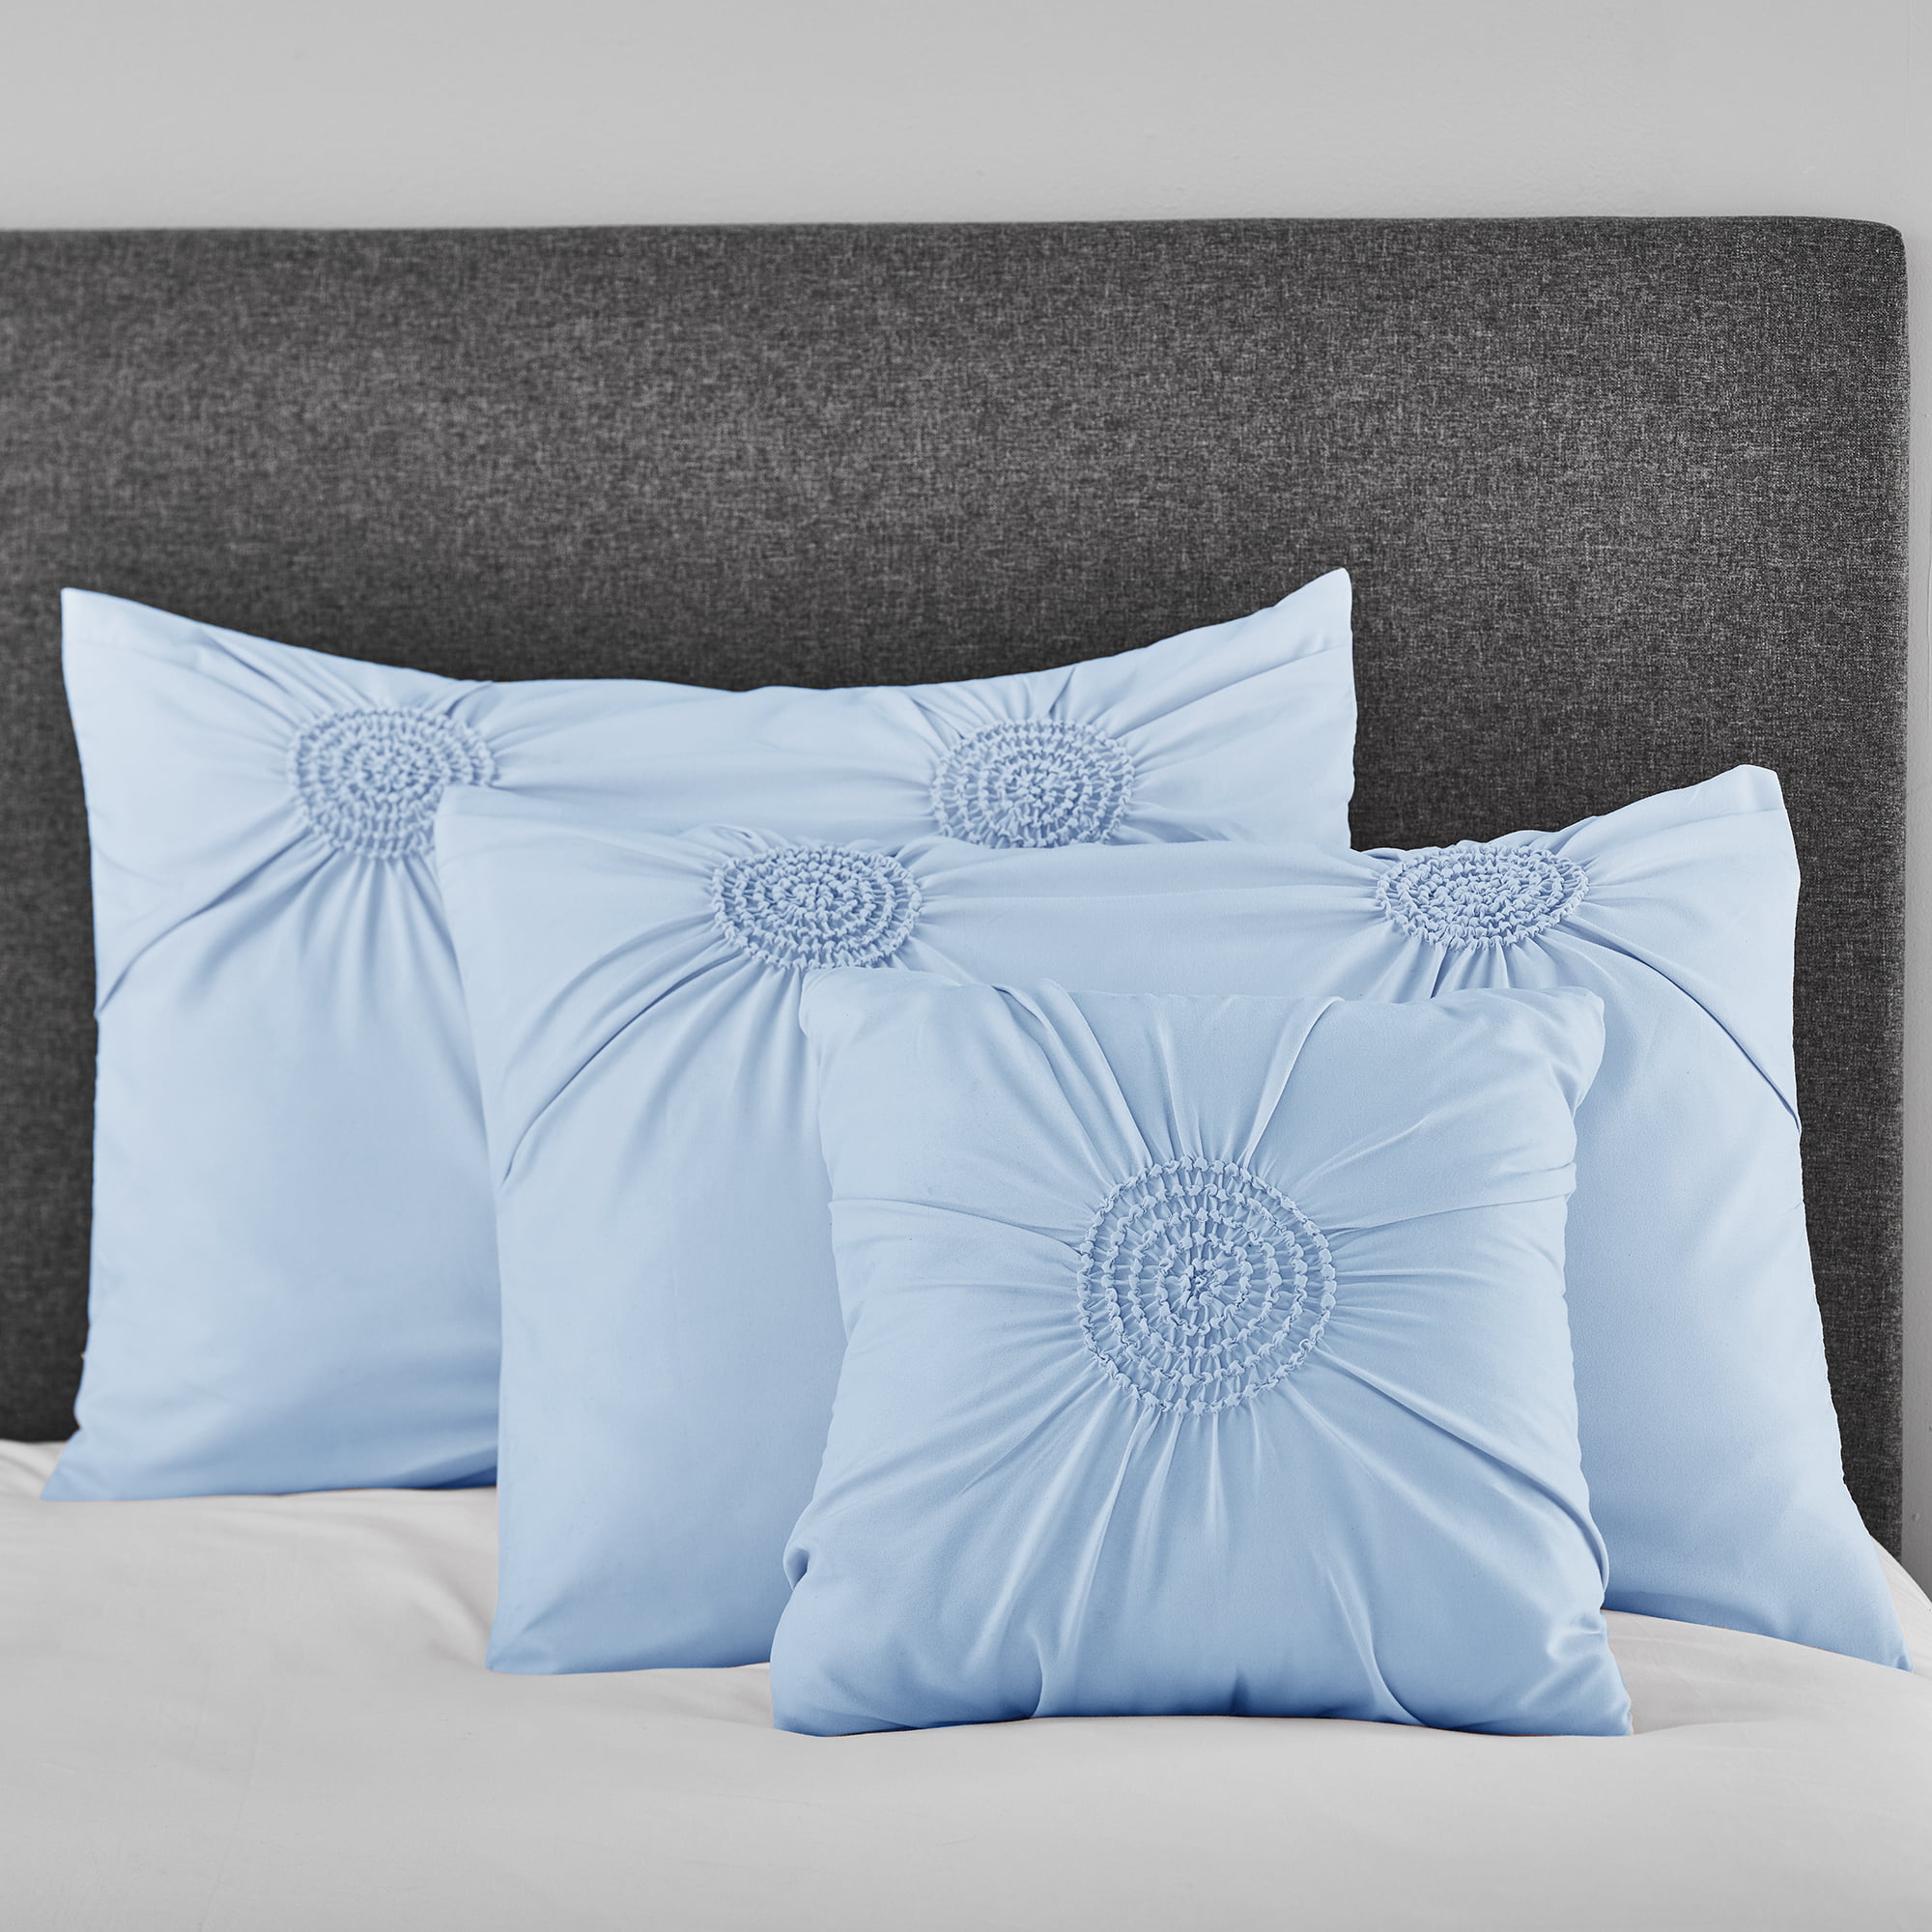 The Pillow Collection Gainell Stripes Bedding Sham Truffle King//20 x 36